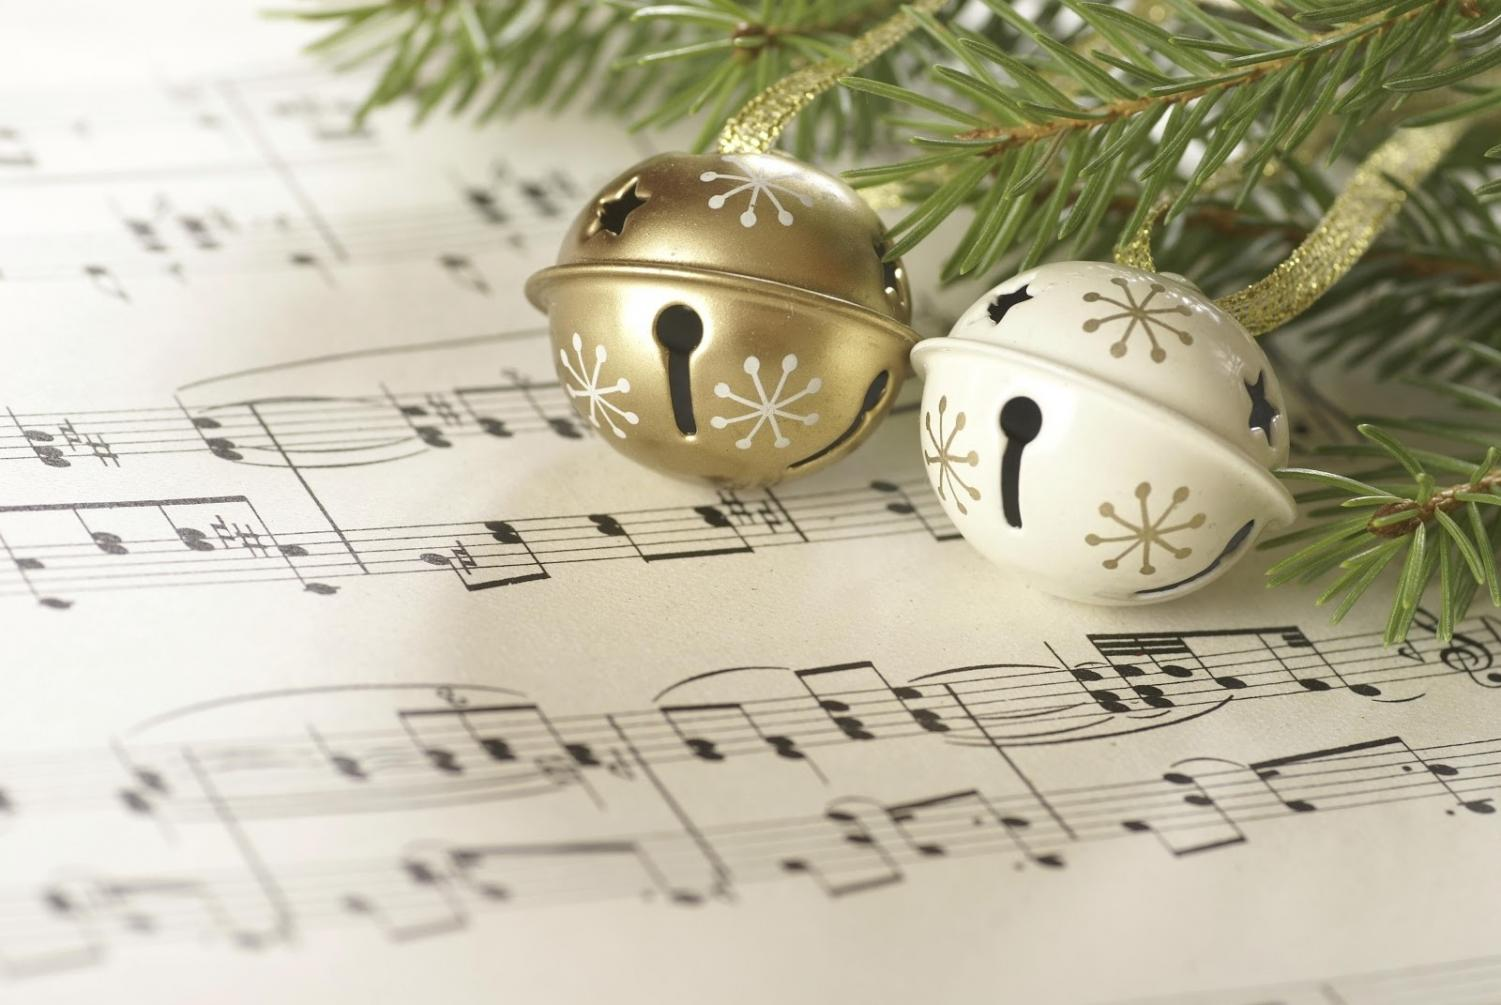 How does holiday music affect the mind? – The Wildcat Voice